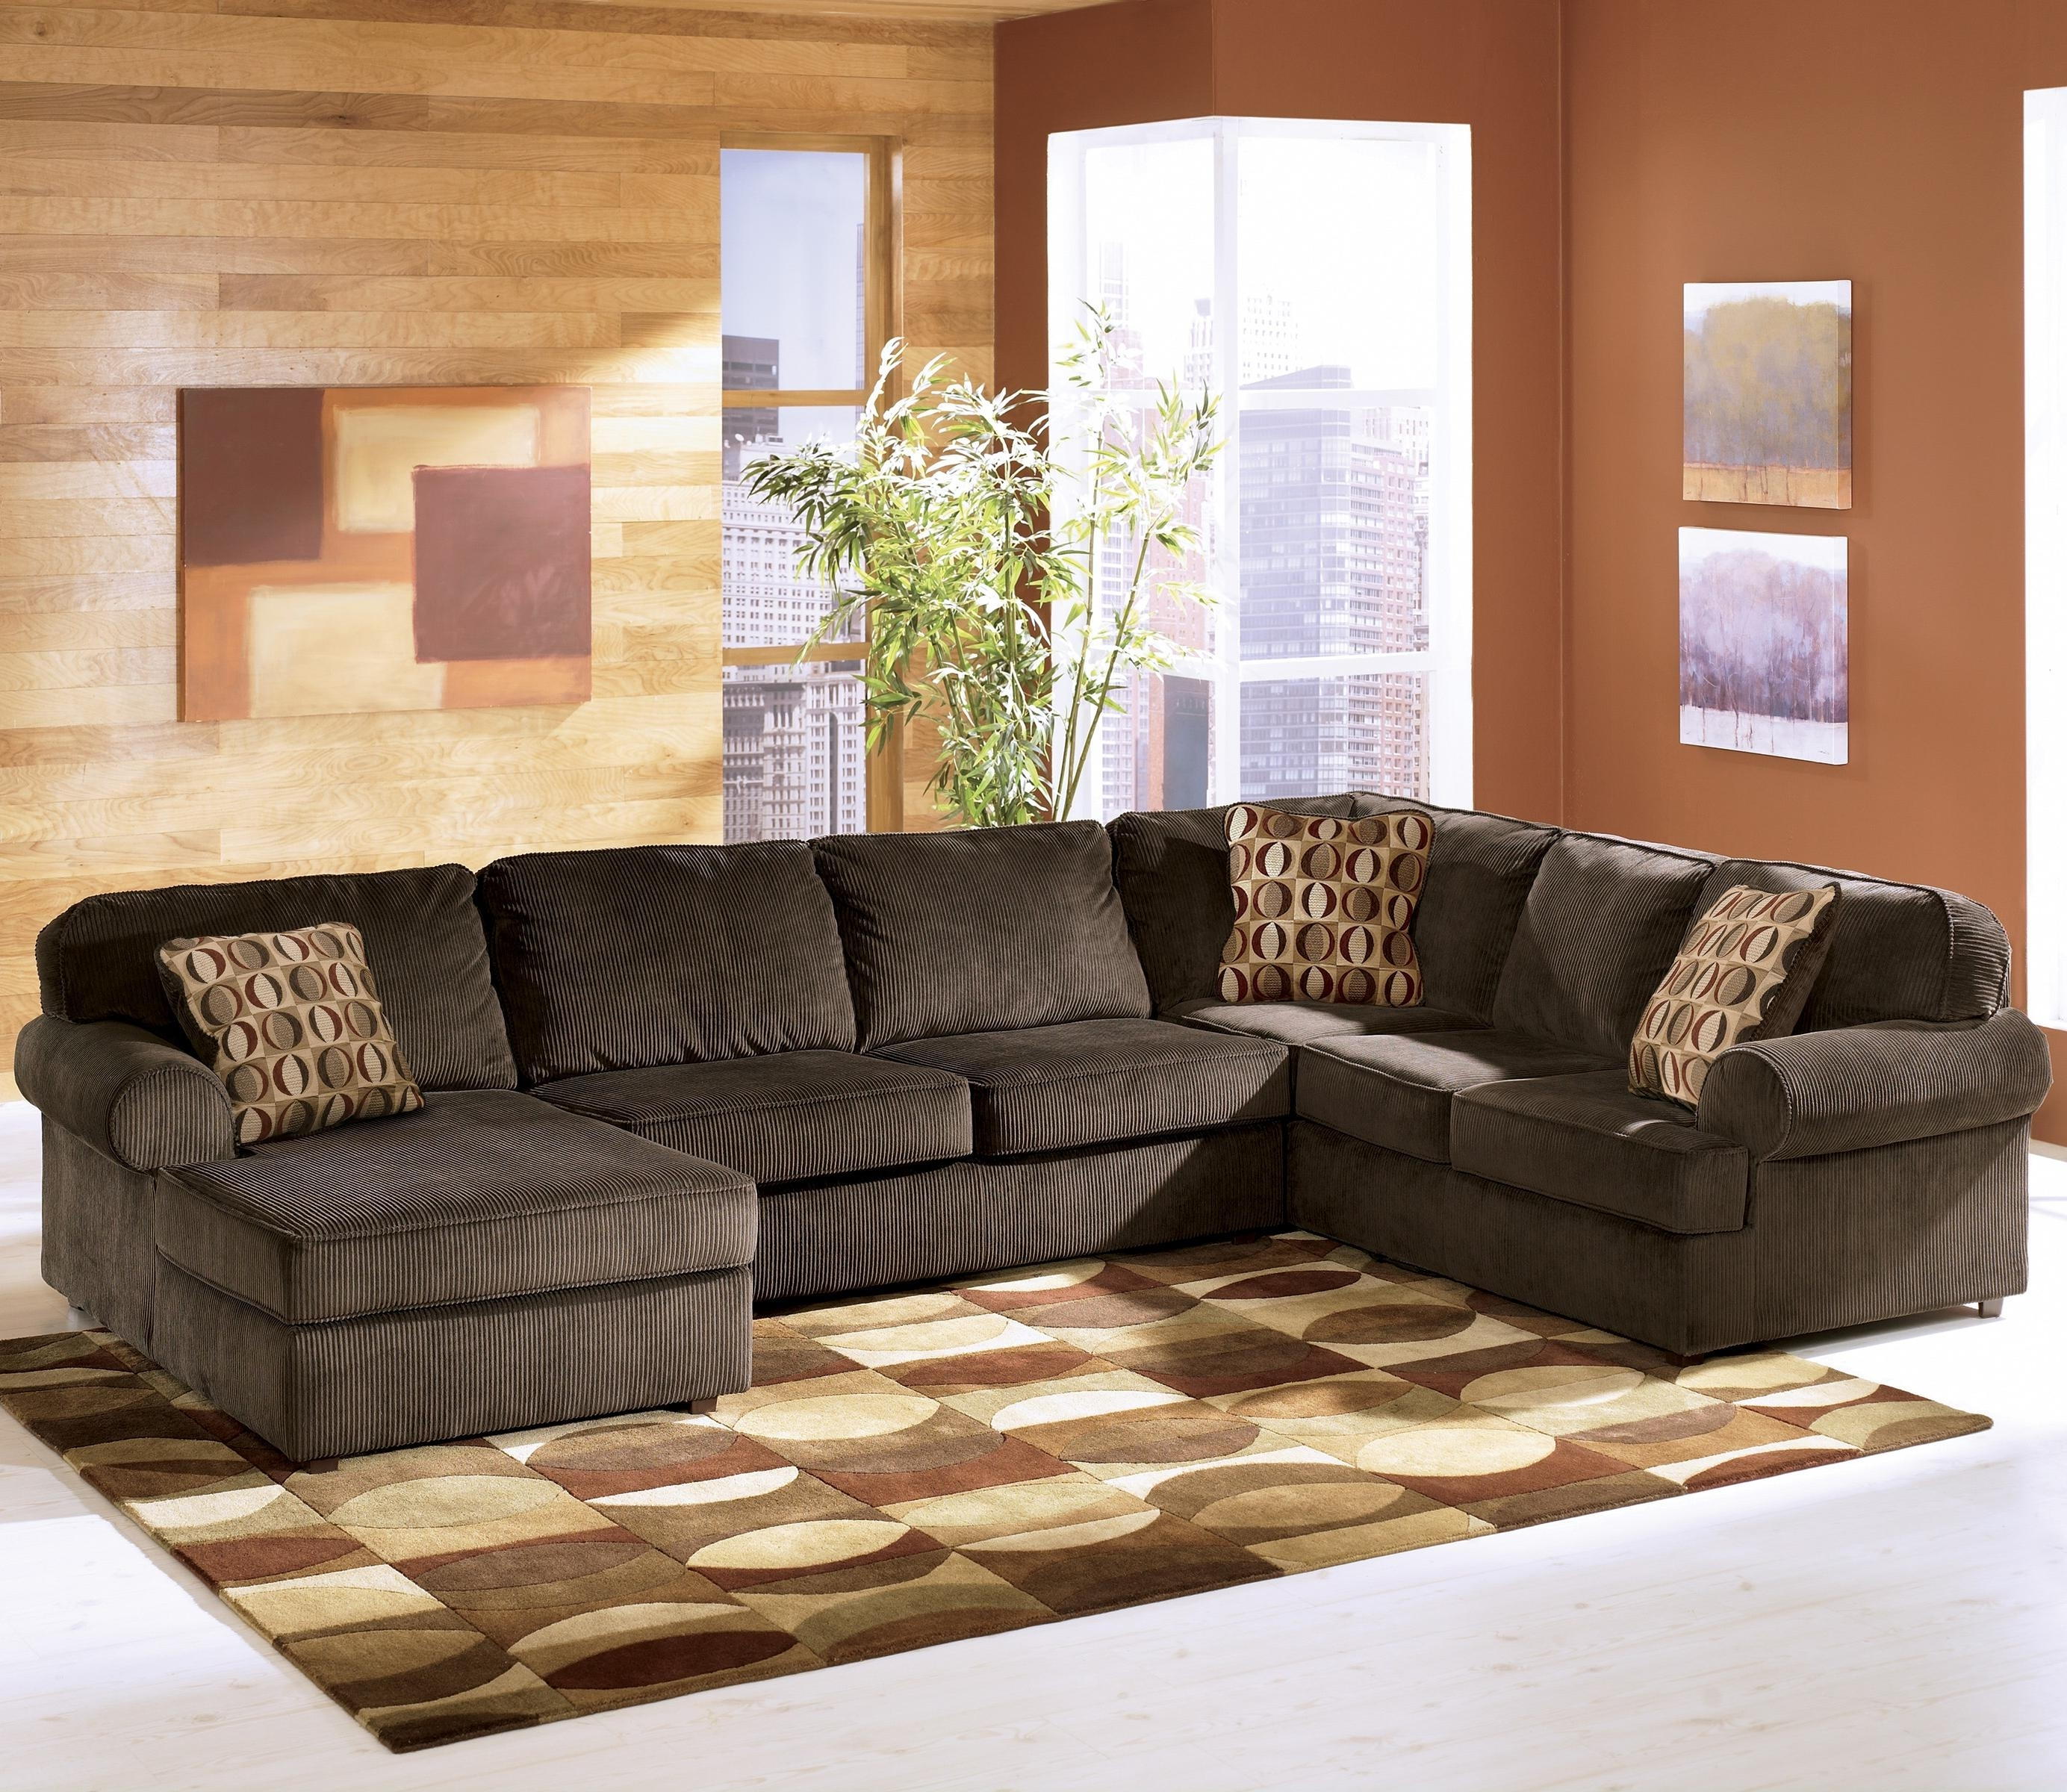 3 Piece Sectional Sofas With Chaise regarding Widely used Ashley Furniture Vista - Chocolate Casual 3-Piece Sectional With